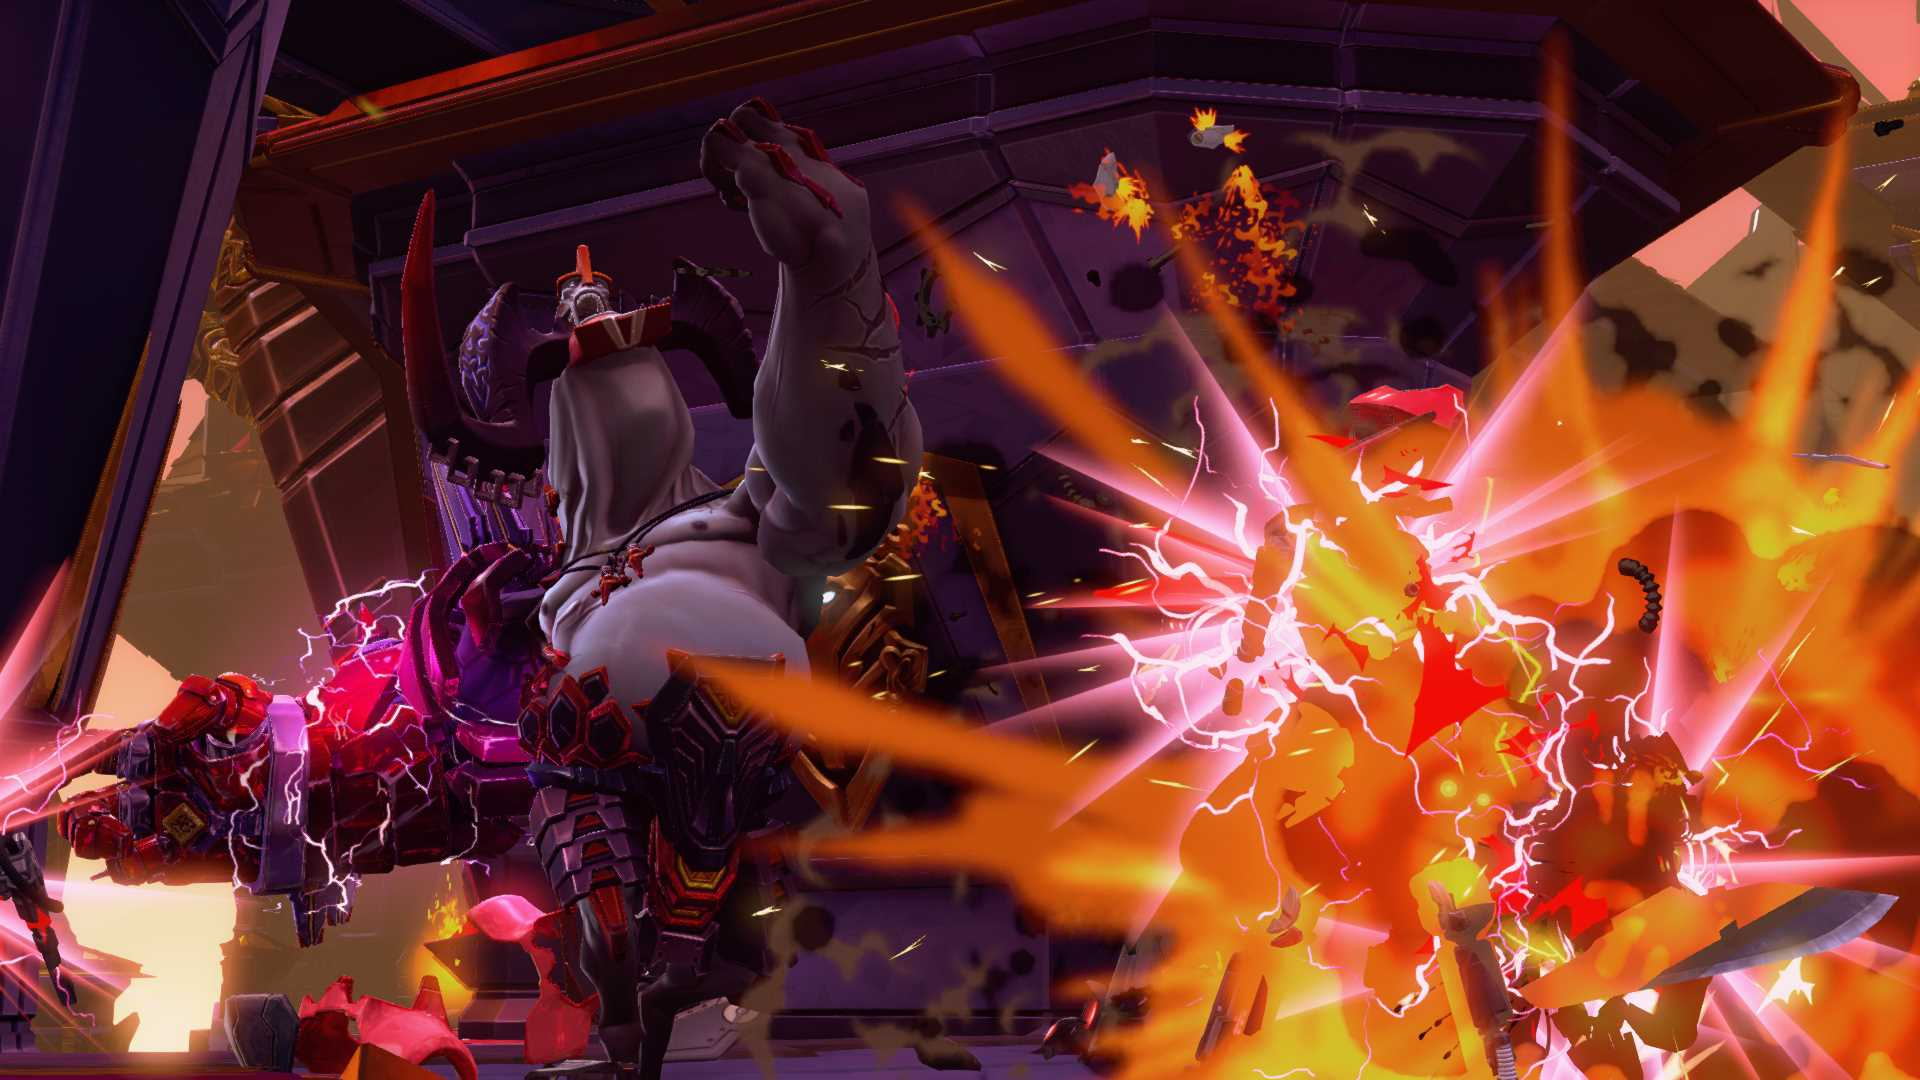 6 tips to get the most out of Battleborn